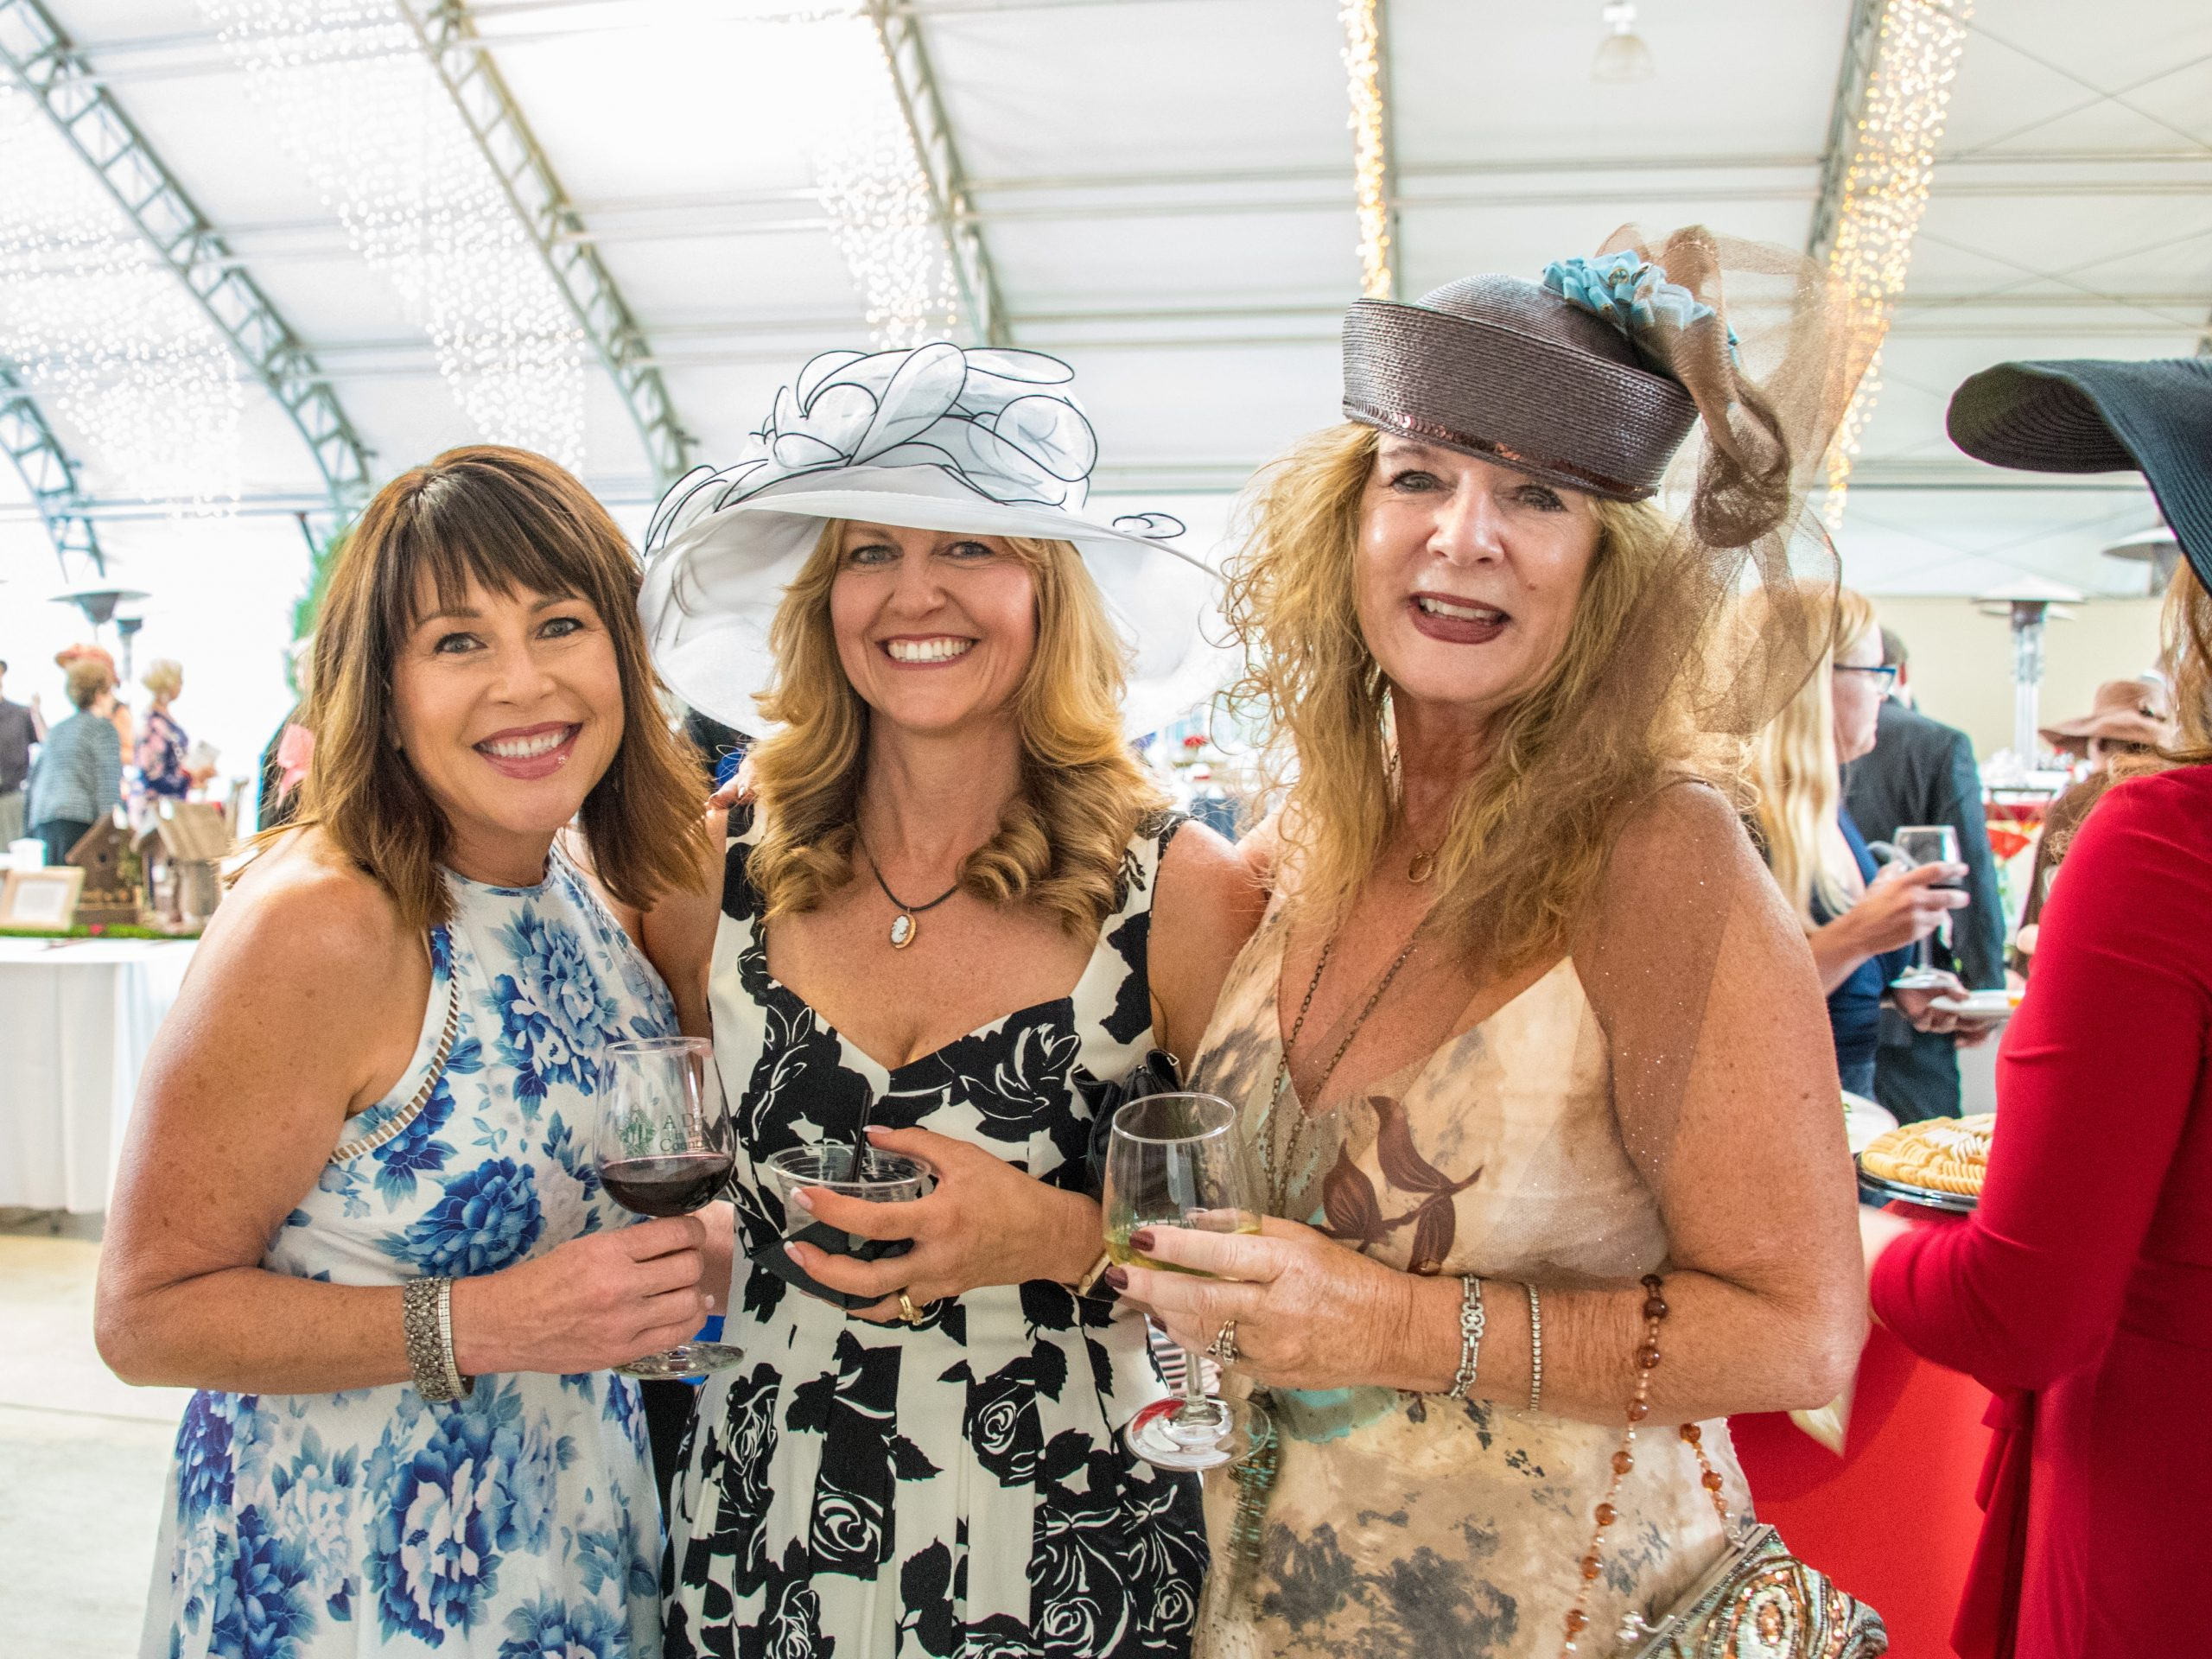 Photo of 3 ladies holding wine glasses at